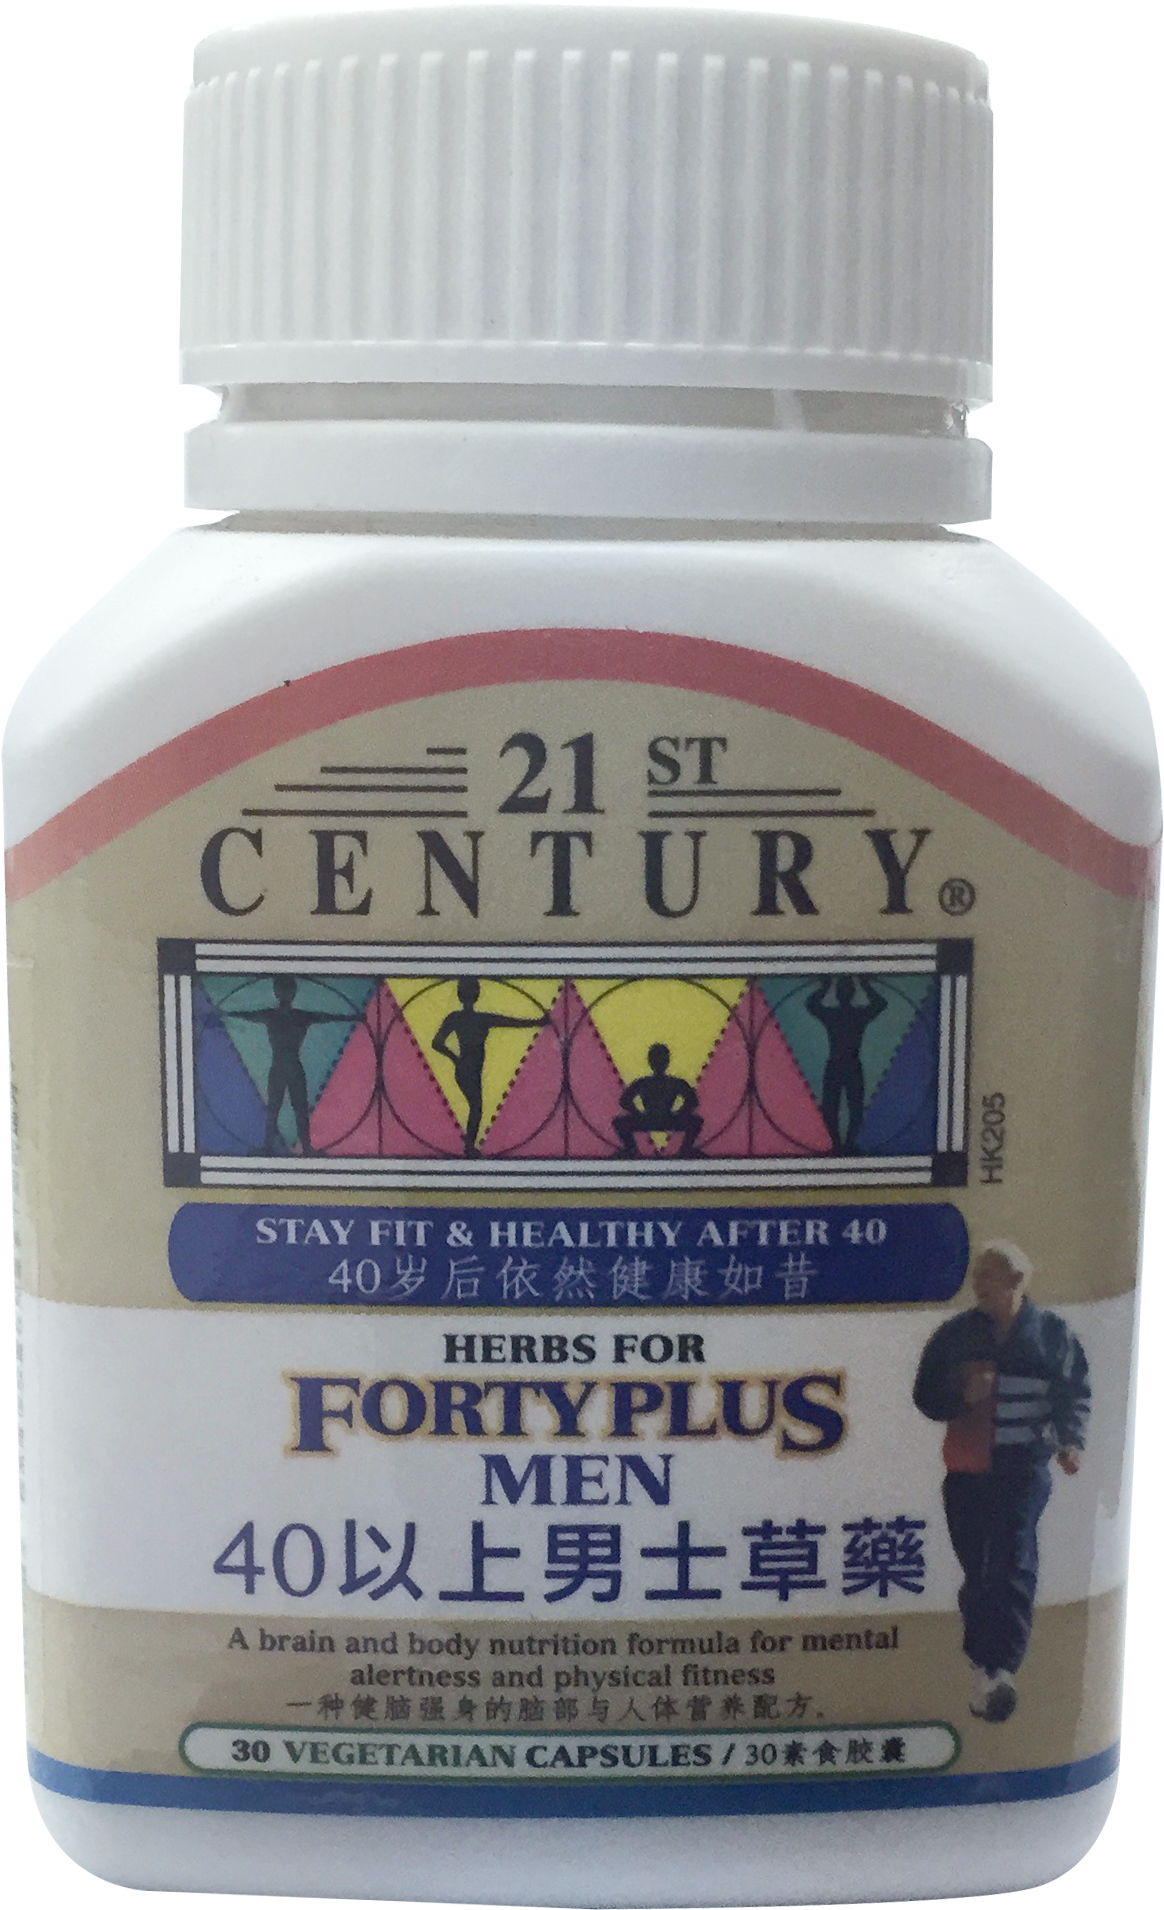 HERBS FOR FORTY PLUS MEN for men's energy and health boost